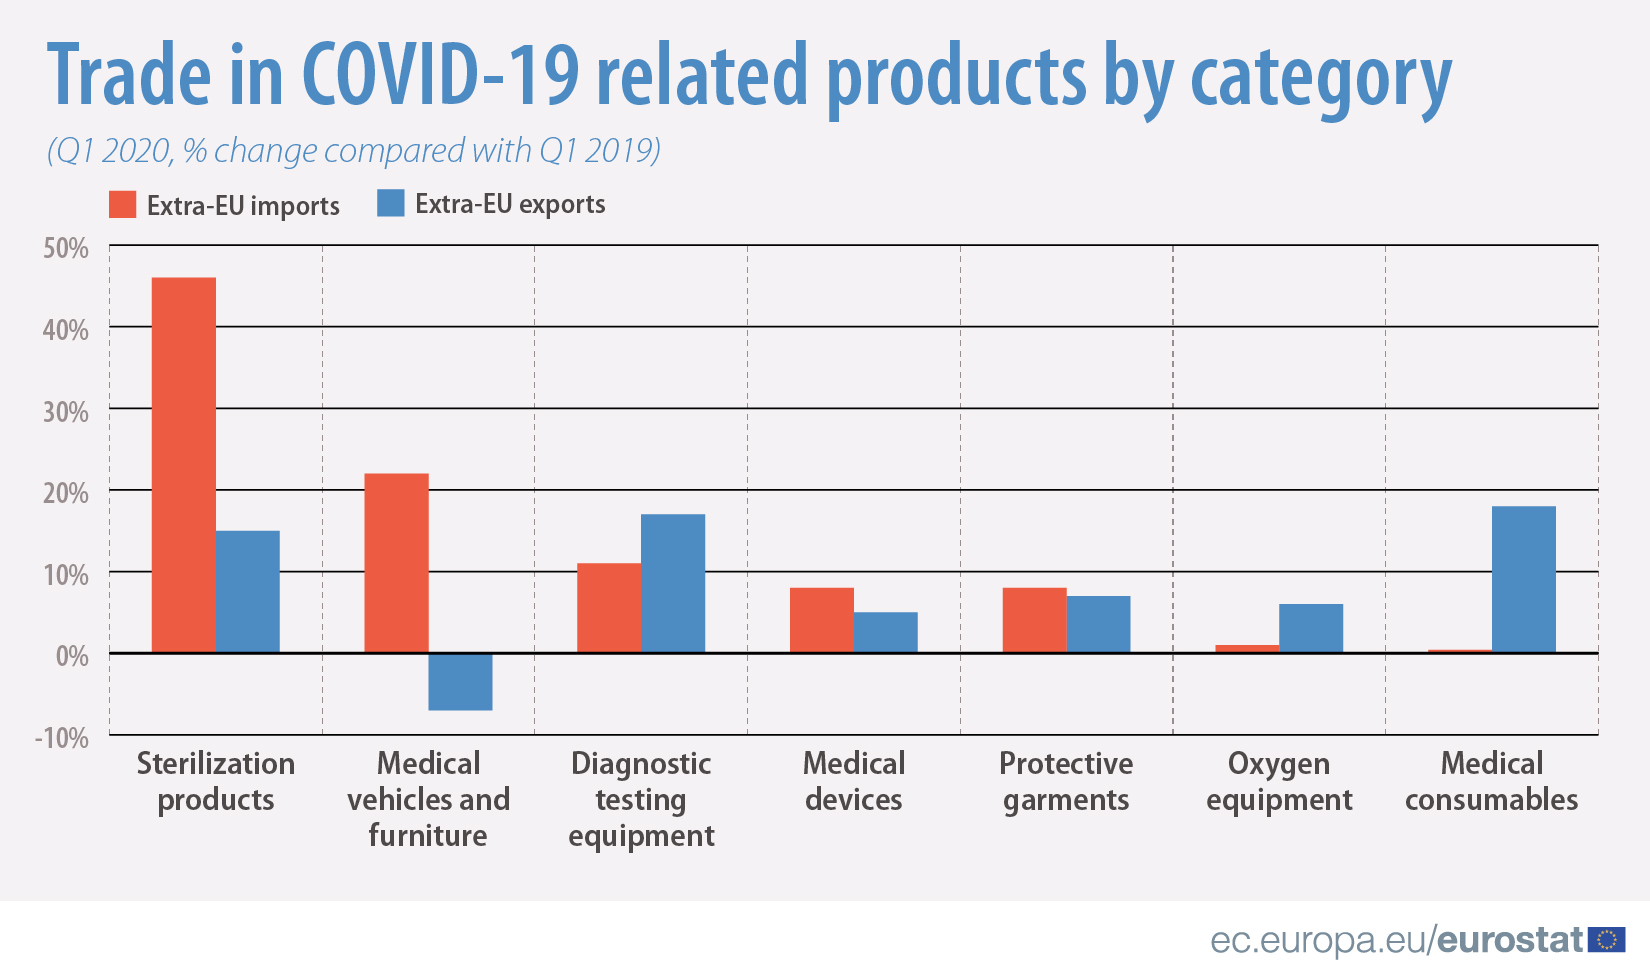 Trade in COVID-19 related products by category